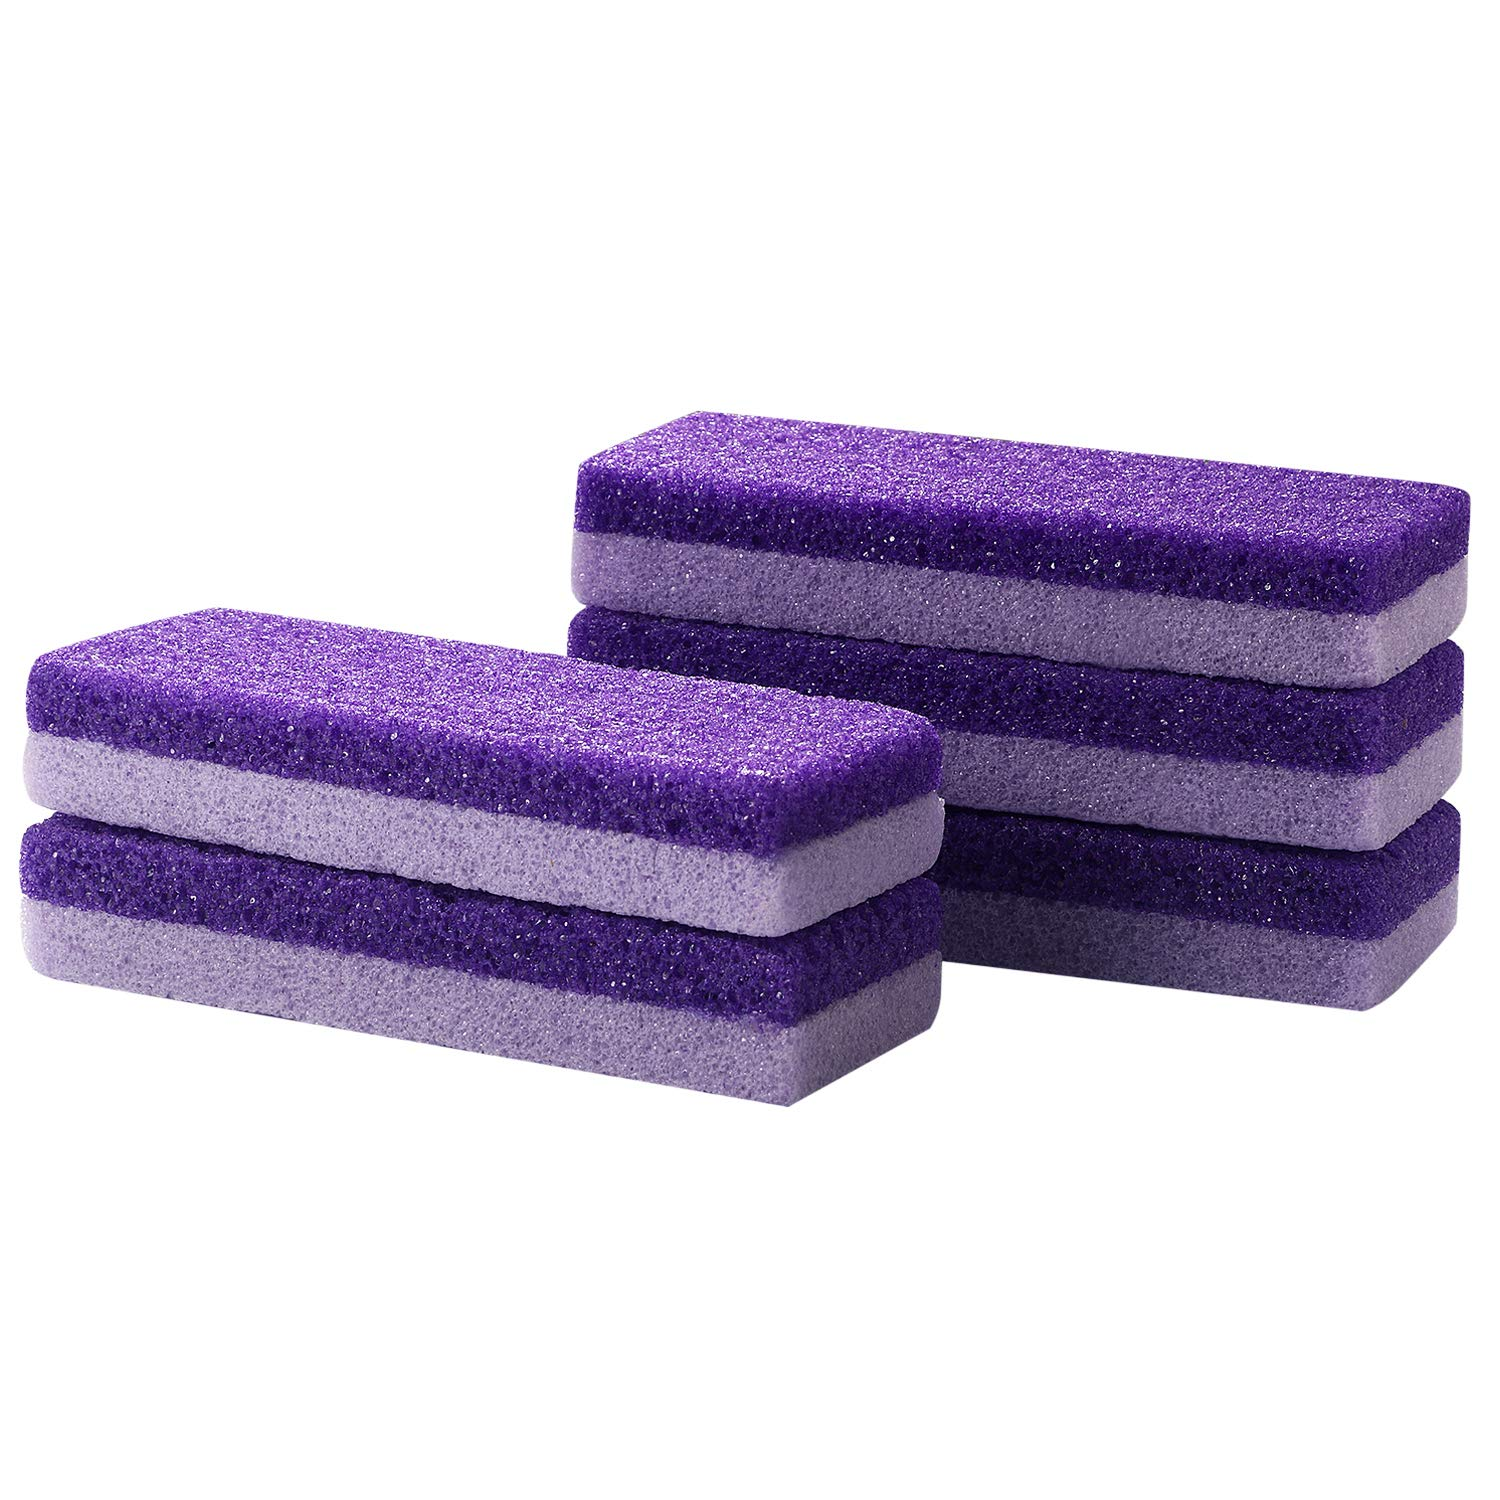 Vtrem 5 PCs Pumice Stone for Feet Double 2 Max 70% OFF Pedicure To IN1 Popular products Sided